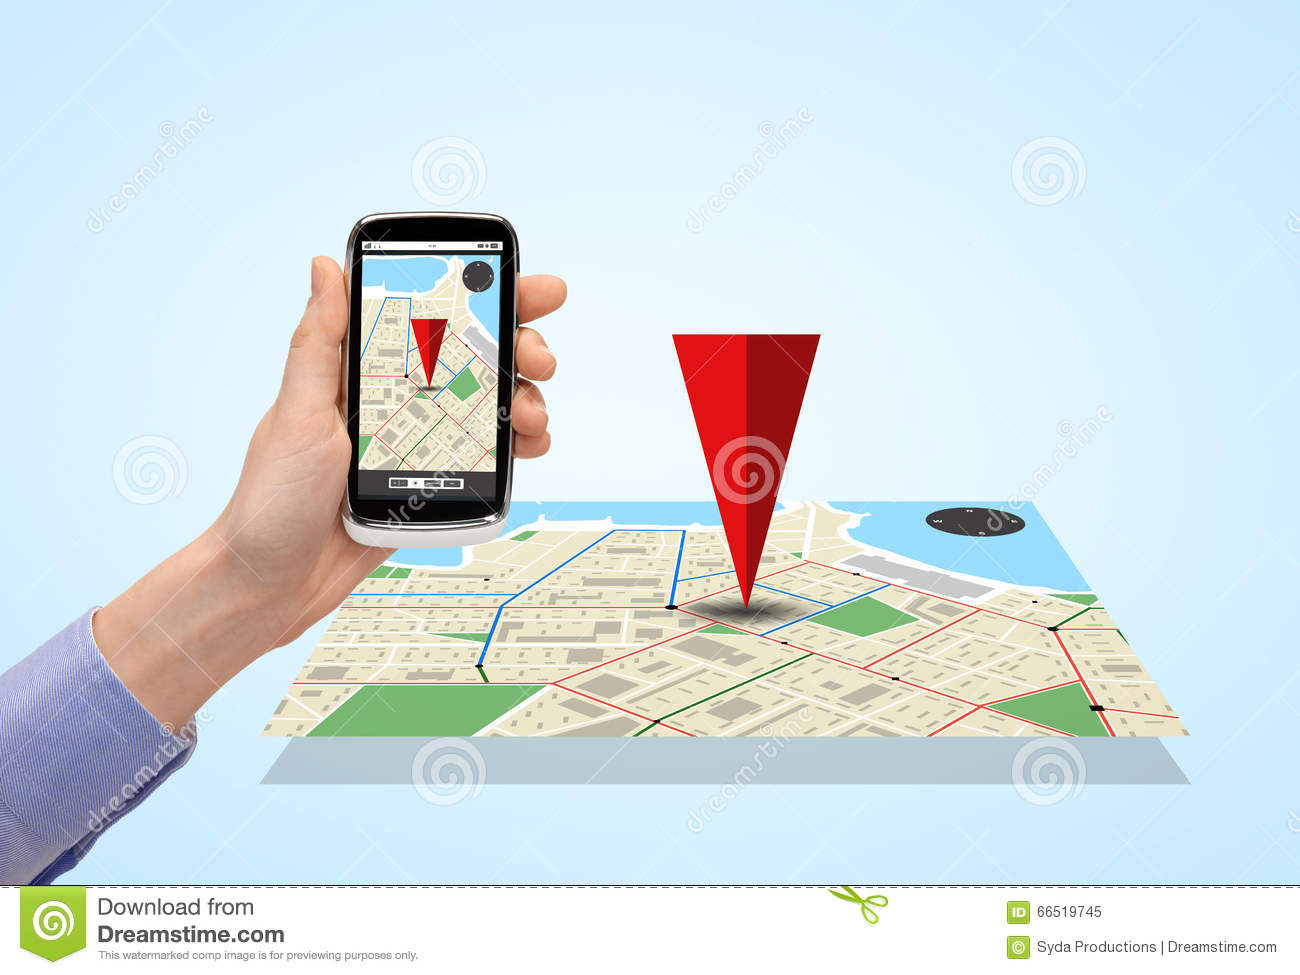 find my cell phone location map with Close Up Hand Navigator Map Smartphone on How Find My Phone Locate Lost Android Iphone Or Windows Phone Track 3610199 besides 1779733 also Close Up Hand Navigator Map Smartphone besides Cell Tower Locations Map moreover How To Easily Track Down Your Lost Or Stolen Android Phone Or Tablet.